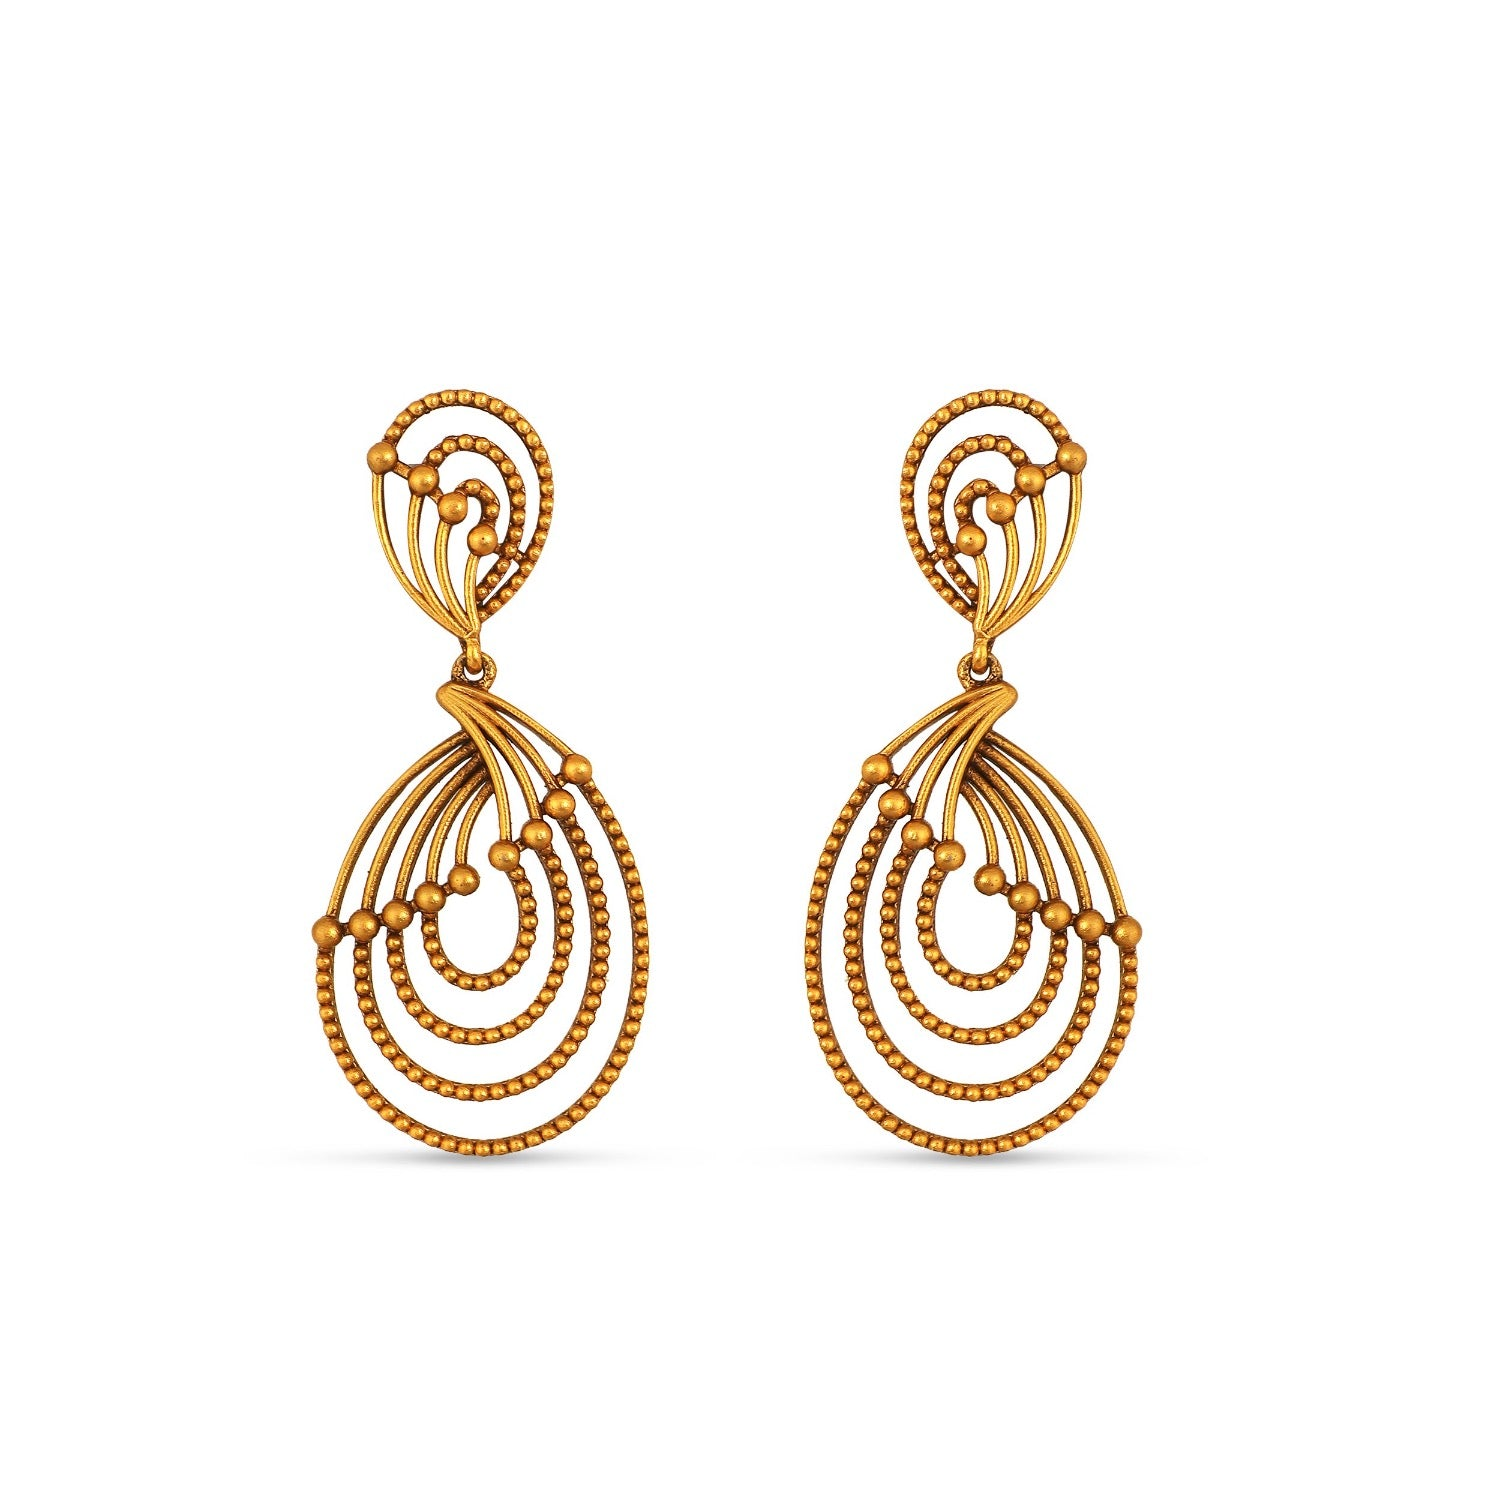 Maissa Delicate Earrings